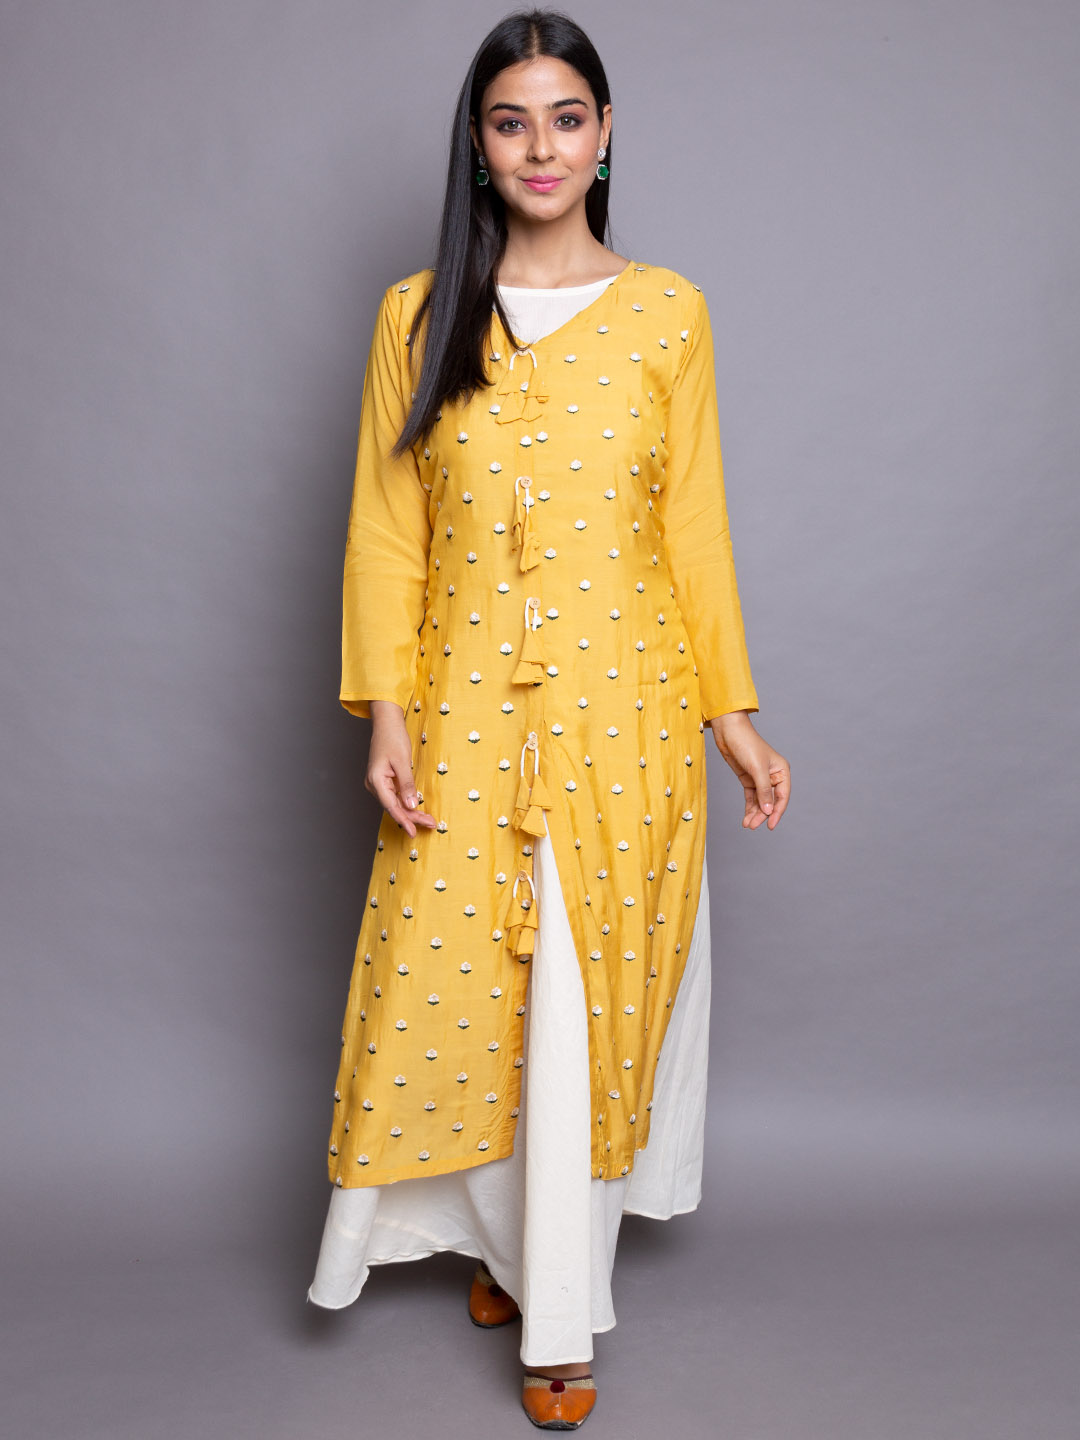 Yellowish Suit With White Inner